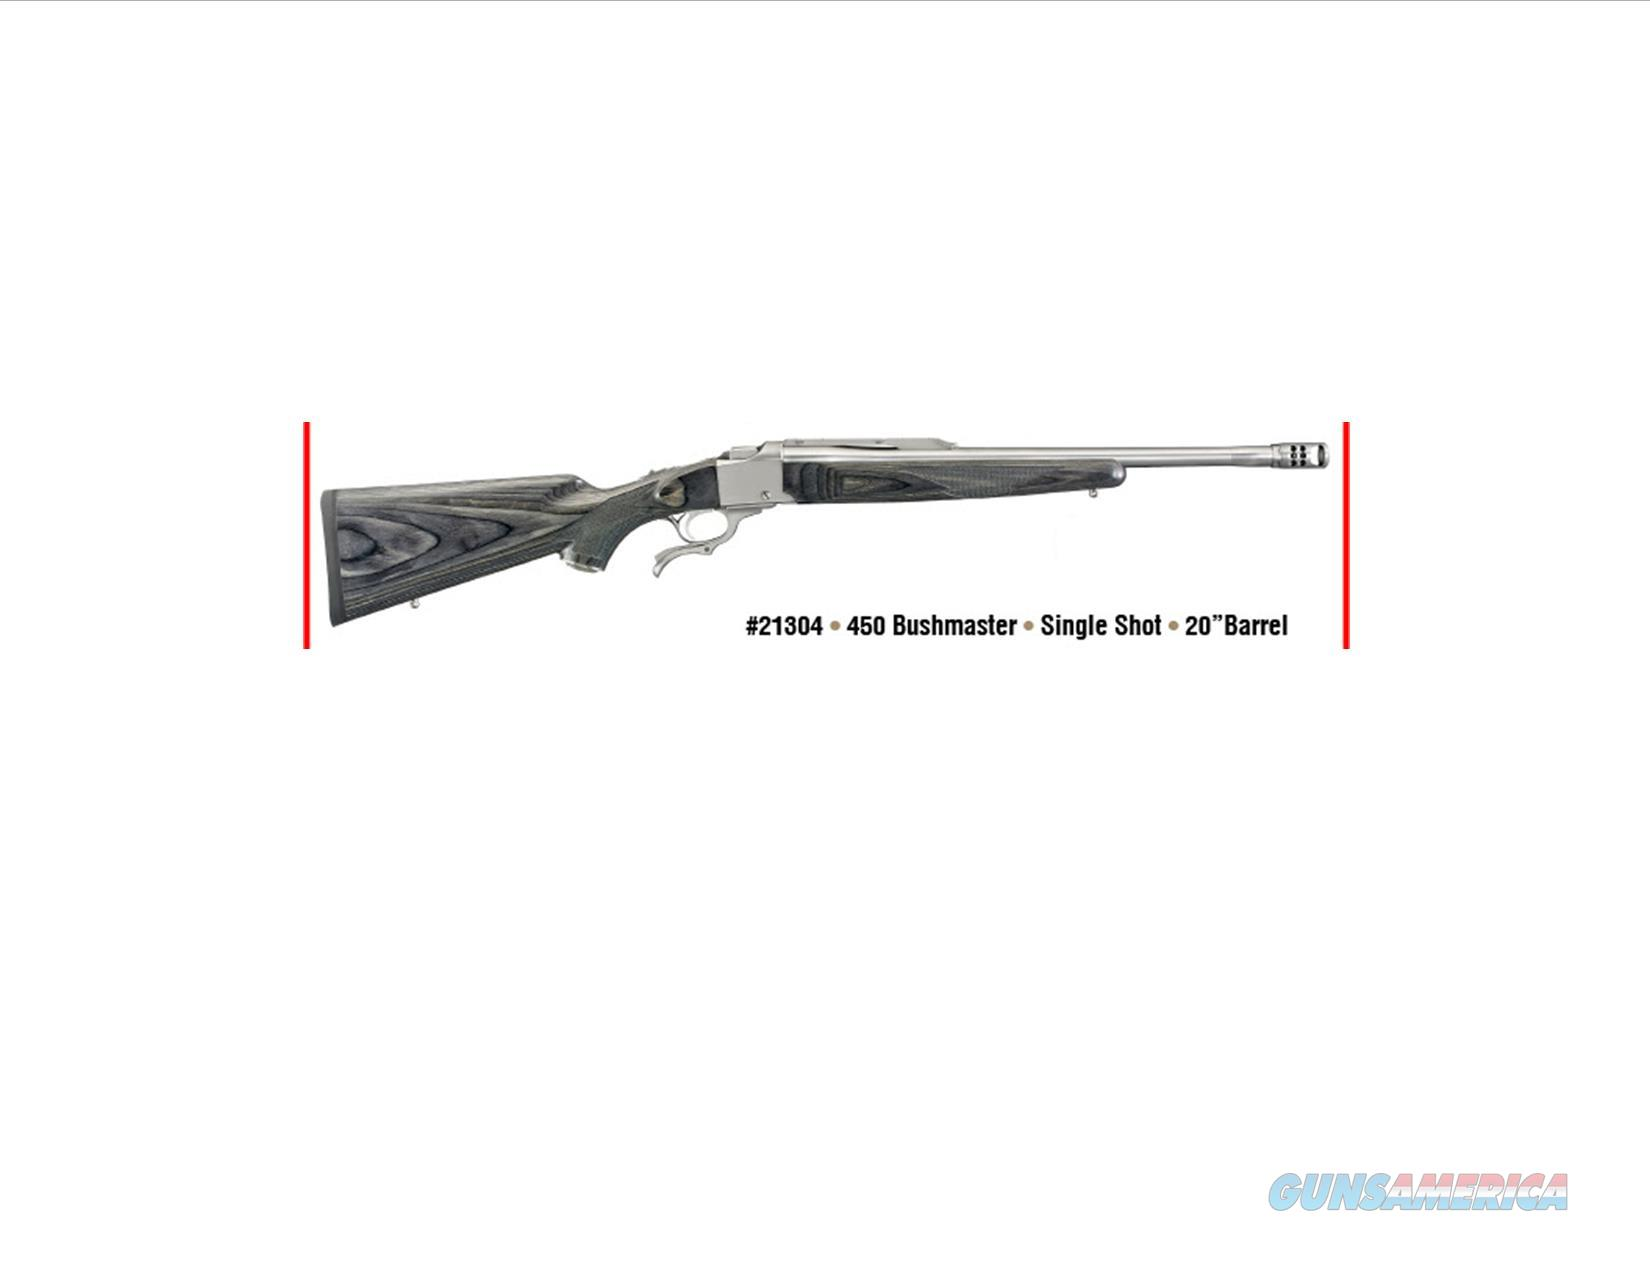 Ruger #1 Single Shot Rifle in 450 Bushmaster!  Guns > Rifles > Ruger Rifles > #1 Type